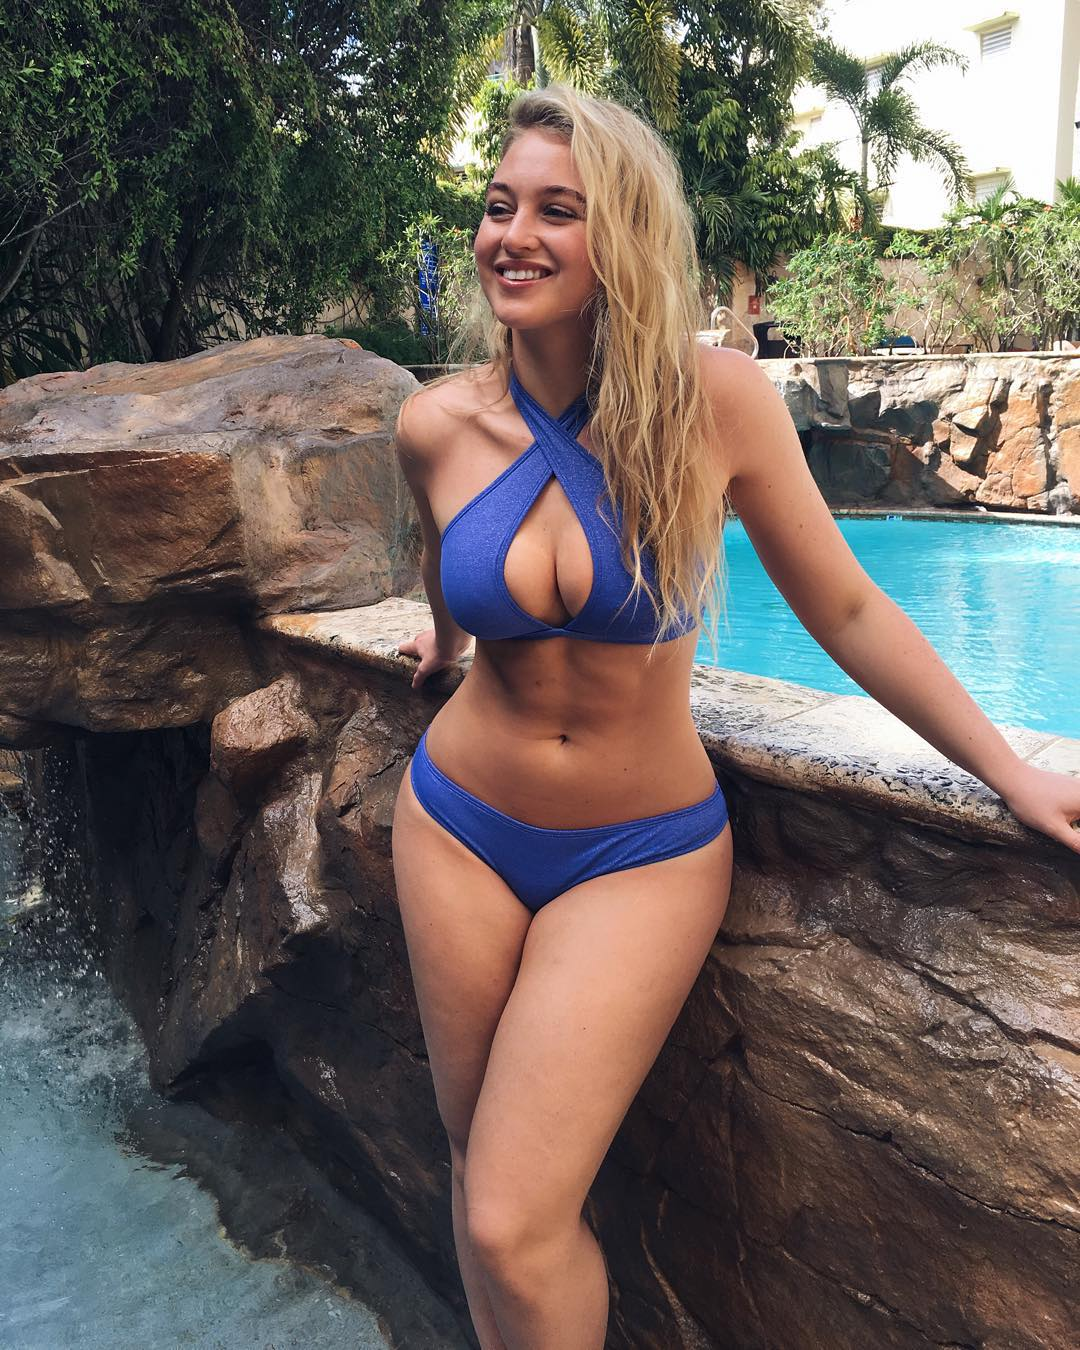 iskra lawrence sexy pics pool dislikely daily funny videos photos